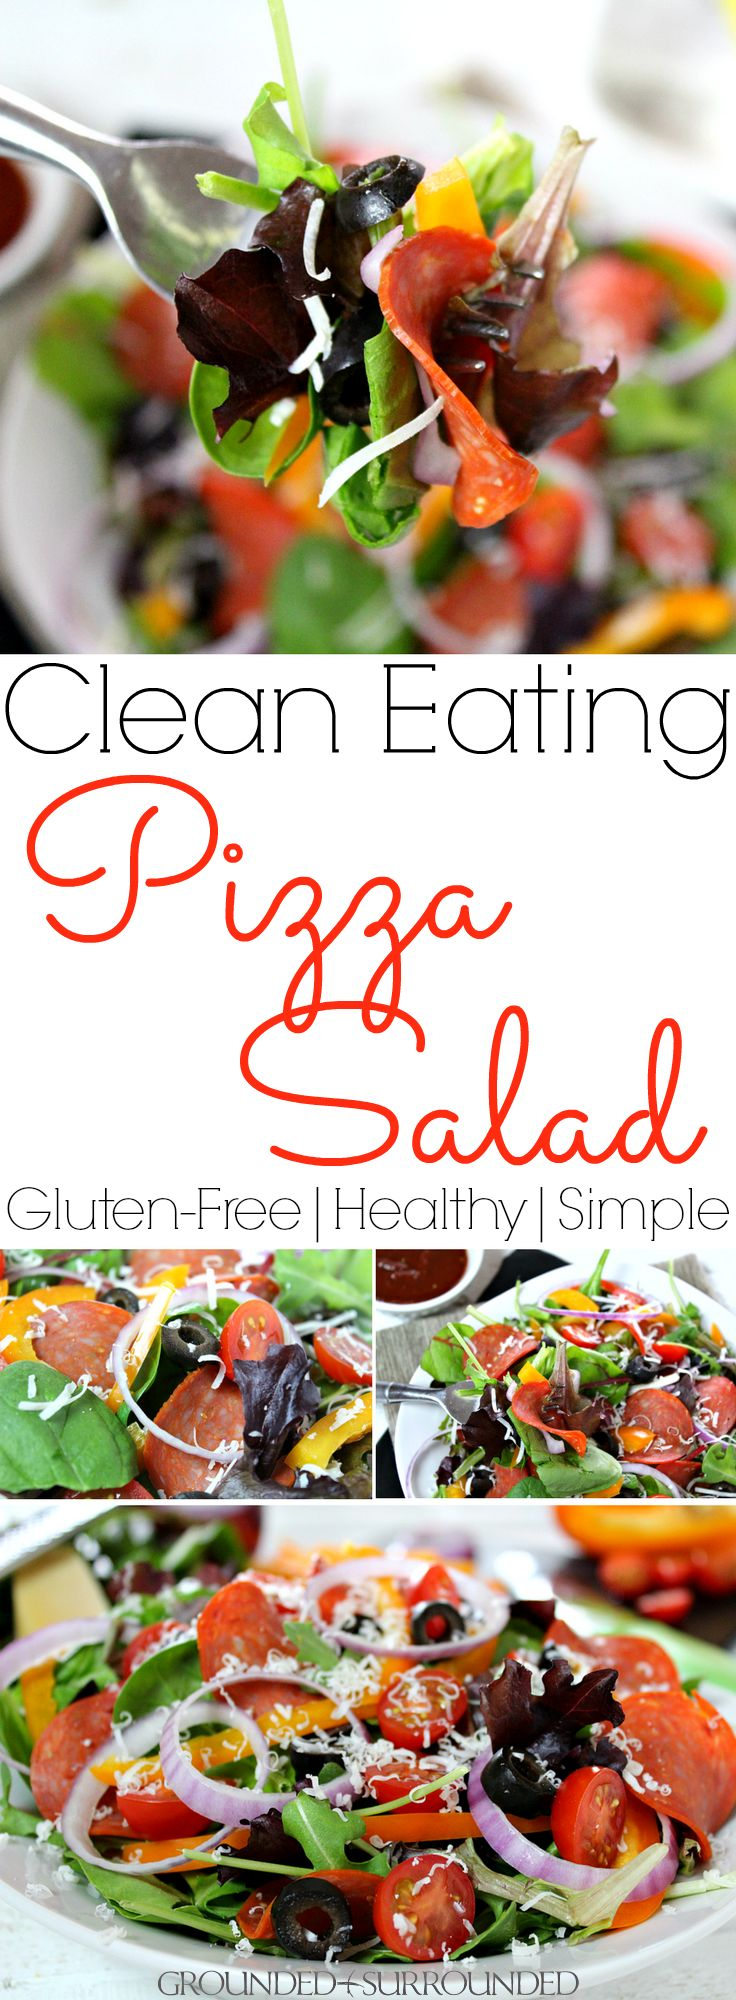 The BEST Clean Eating Pizza Salad | This is one of my favorite healthy and low carb lunch ideas! It is a delicious gluten free recipe complete with turkey pepperoni for protein, homemade tomato-based dressing, shredded Parmesan cheese, and veggies. Meals like this are great for one or families. Just pile high the toppings on a whole bag of greens and triple the sauce! Give this easy and flavorful salad a try if you are in a food rut!